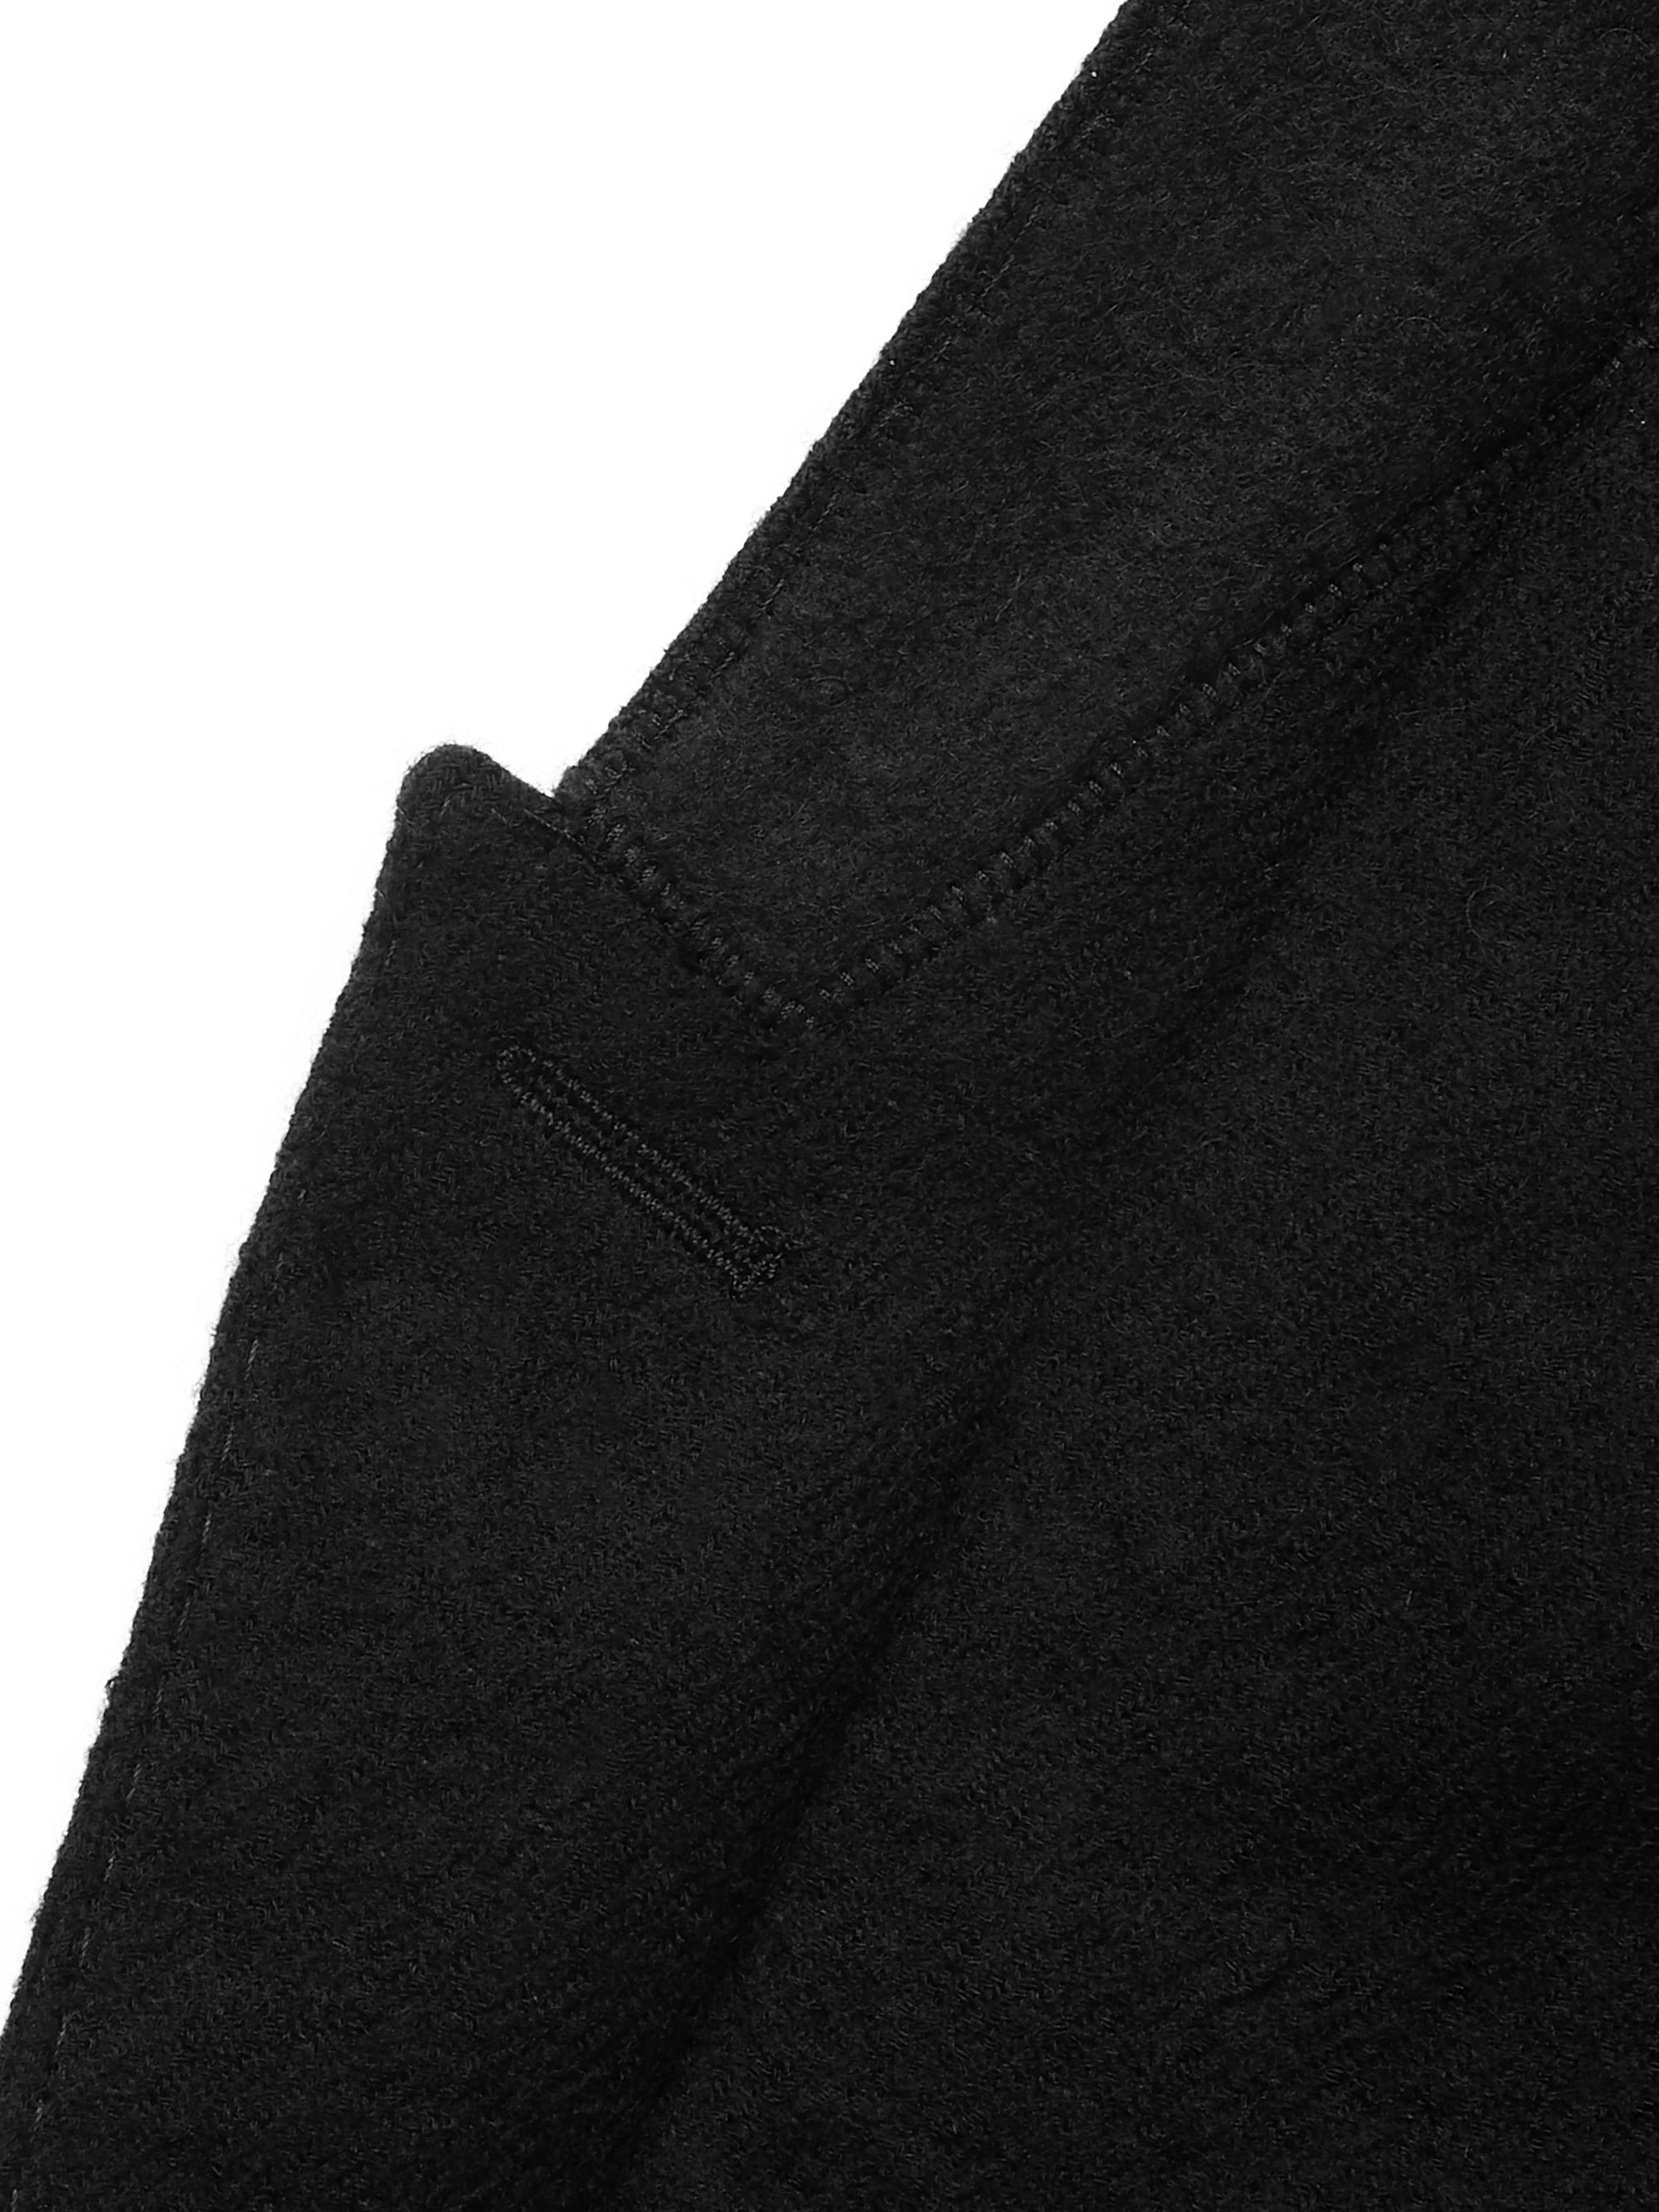 Rick Owens Appliquéd Virgin Wool Blazer